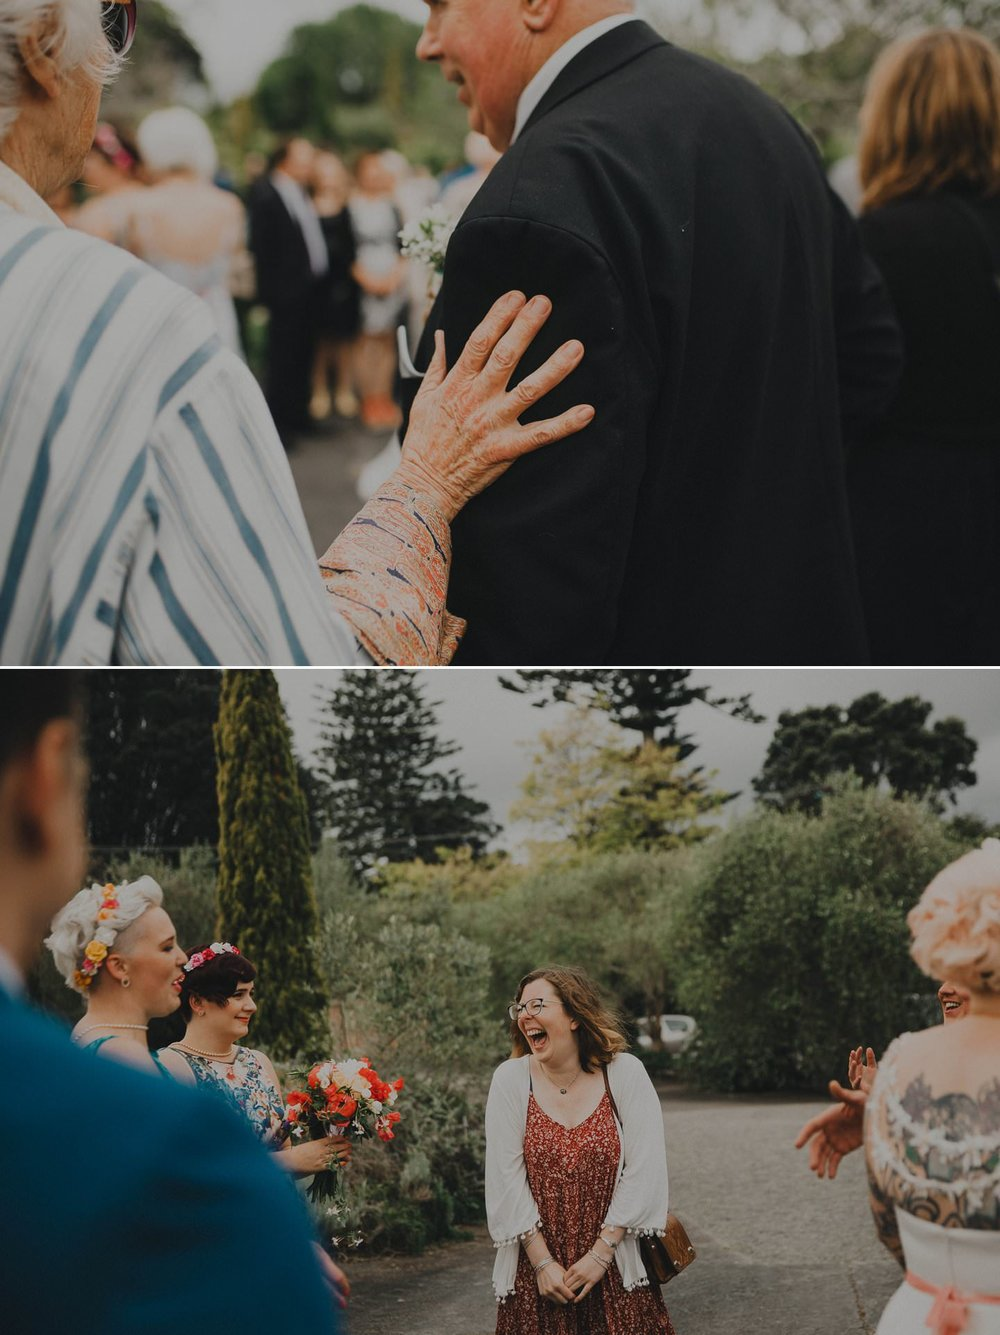 Candid wedding photography of guests at a wedding